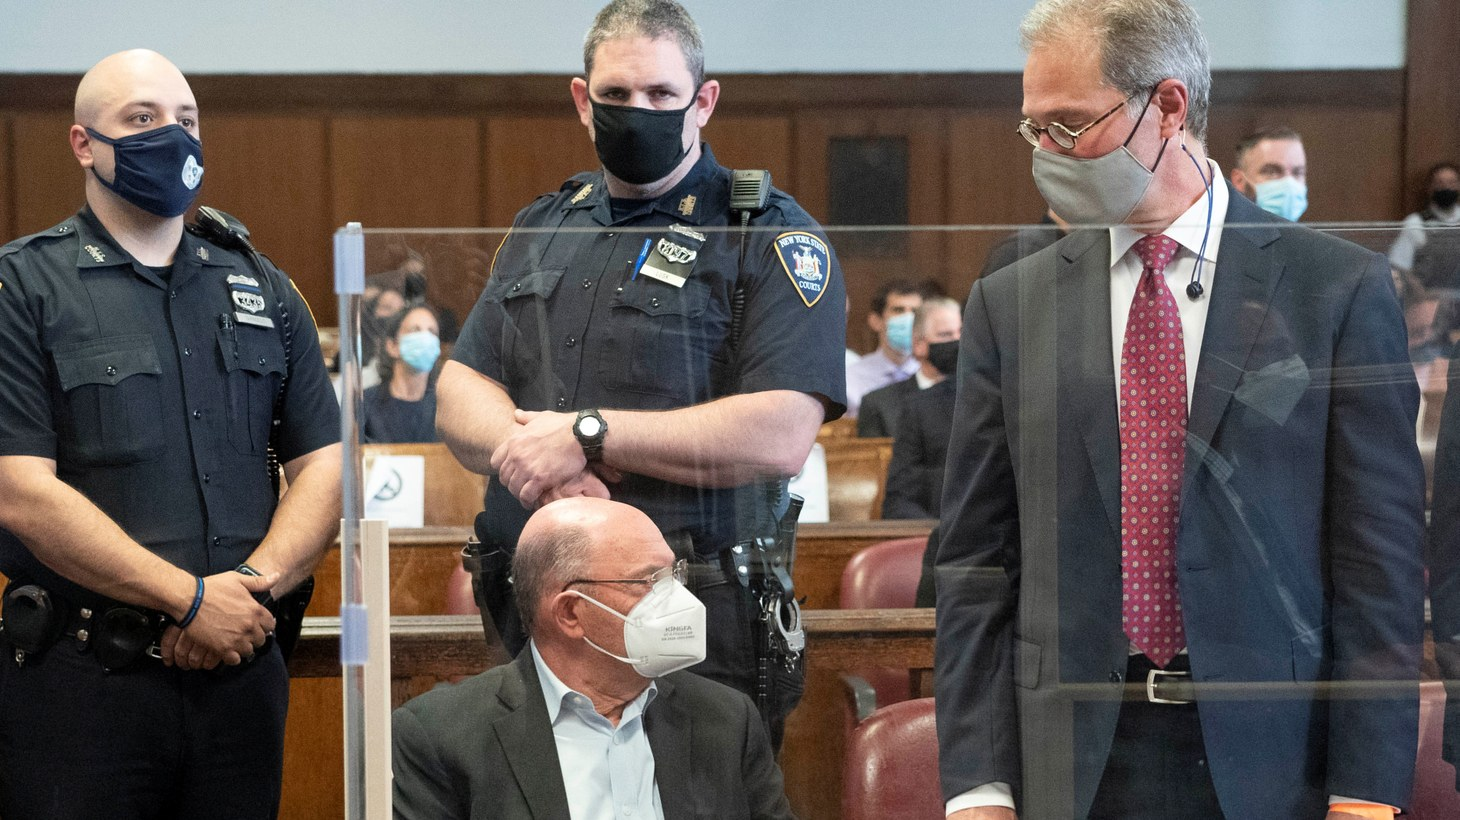 Trump Organization chief financial officer Allen Weisselberg appears for his arraignment hearing in New York State Supreme Court in the Manhattan borough of New York City, New York, U.S., July 1, 2021.